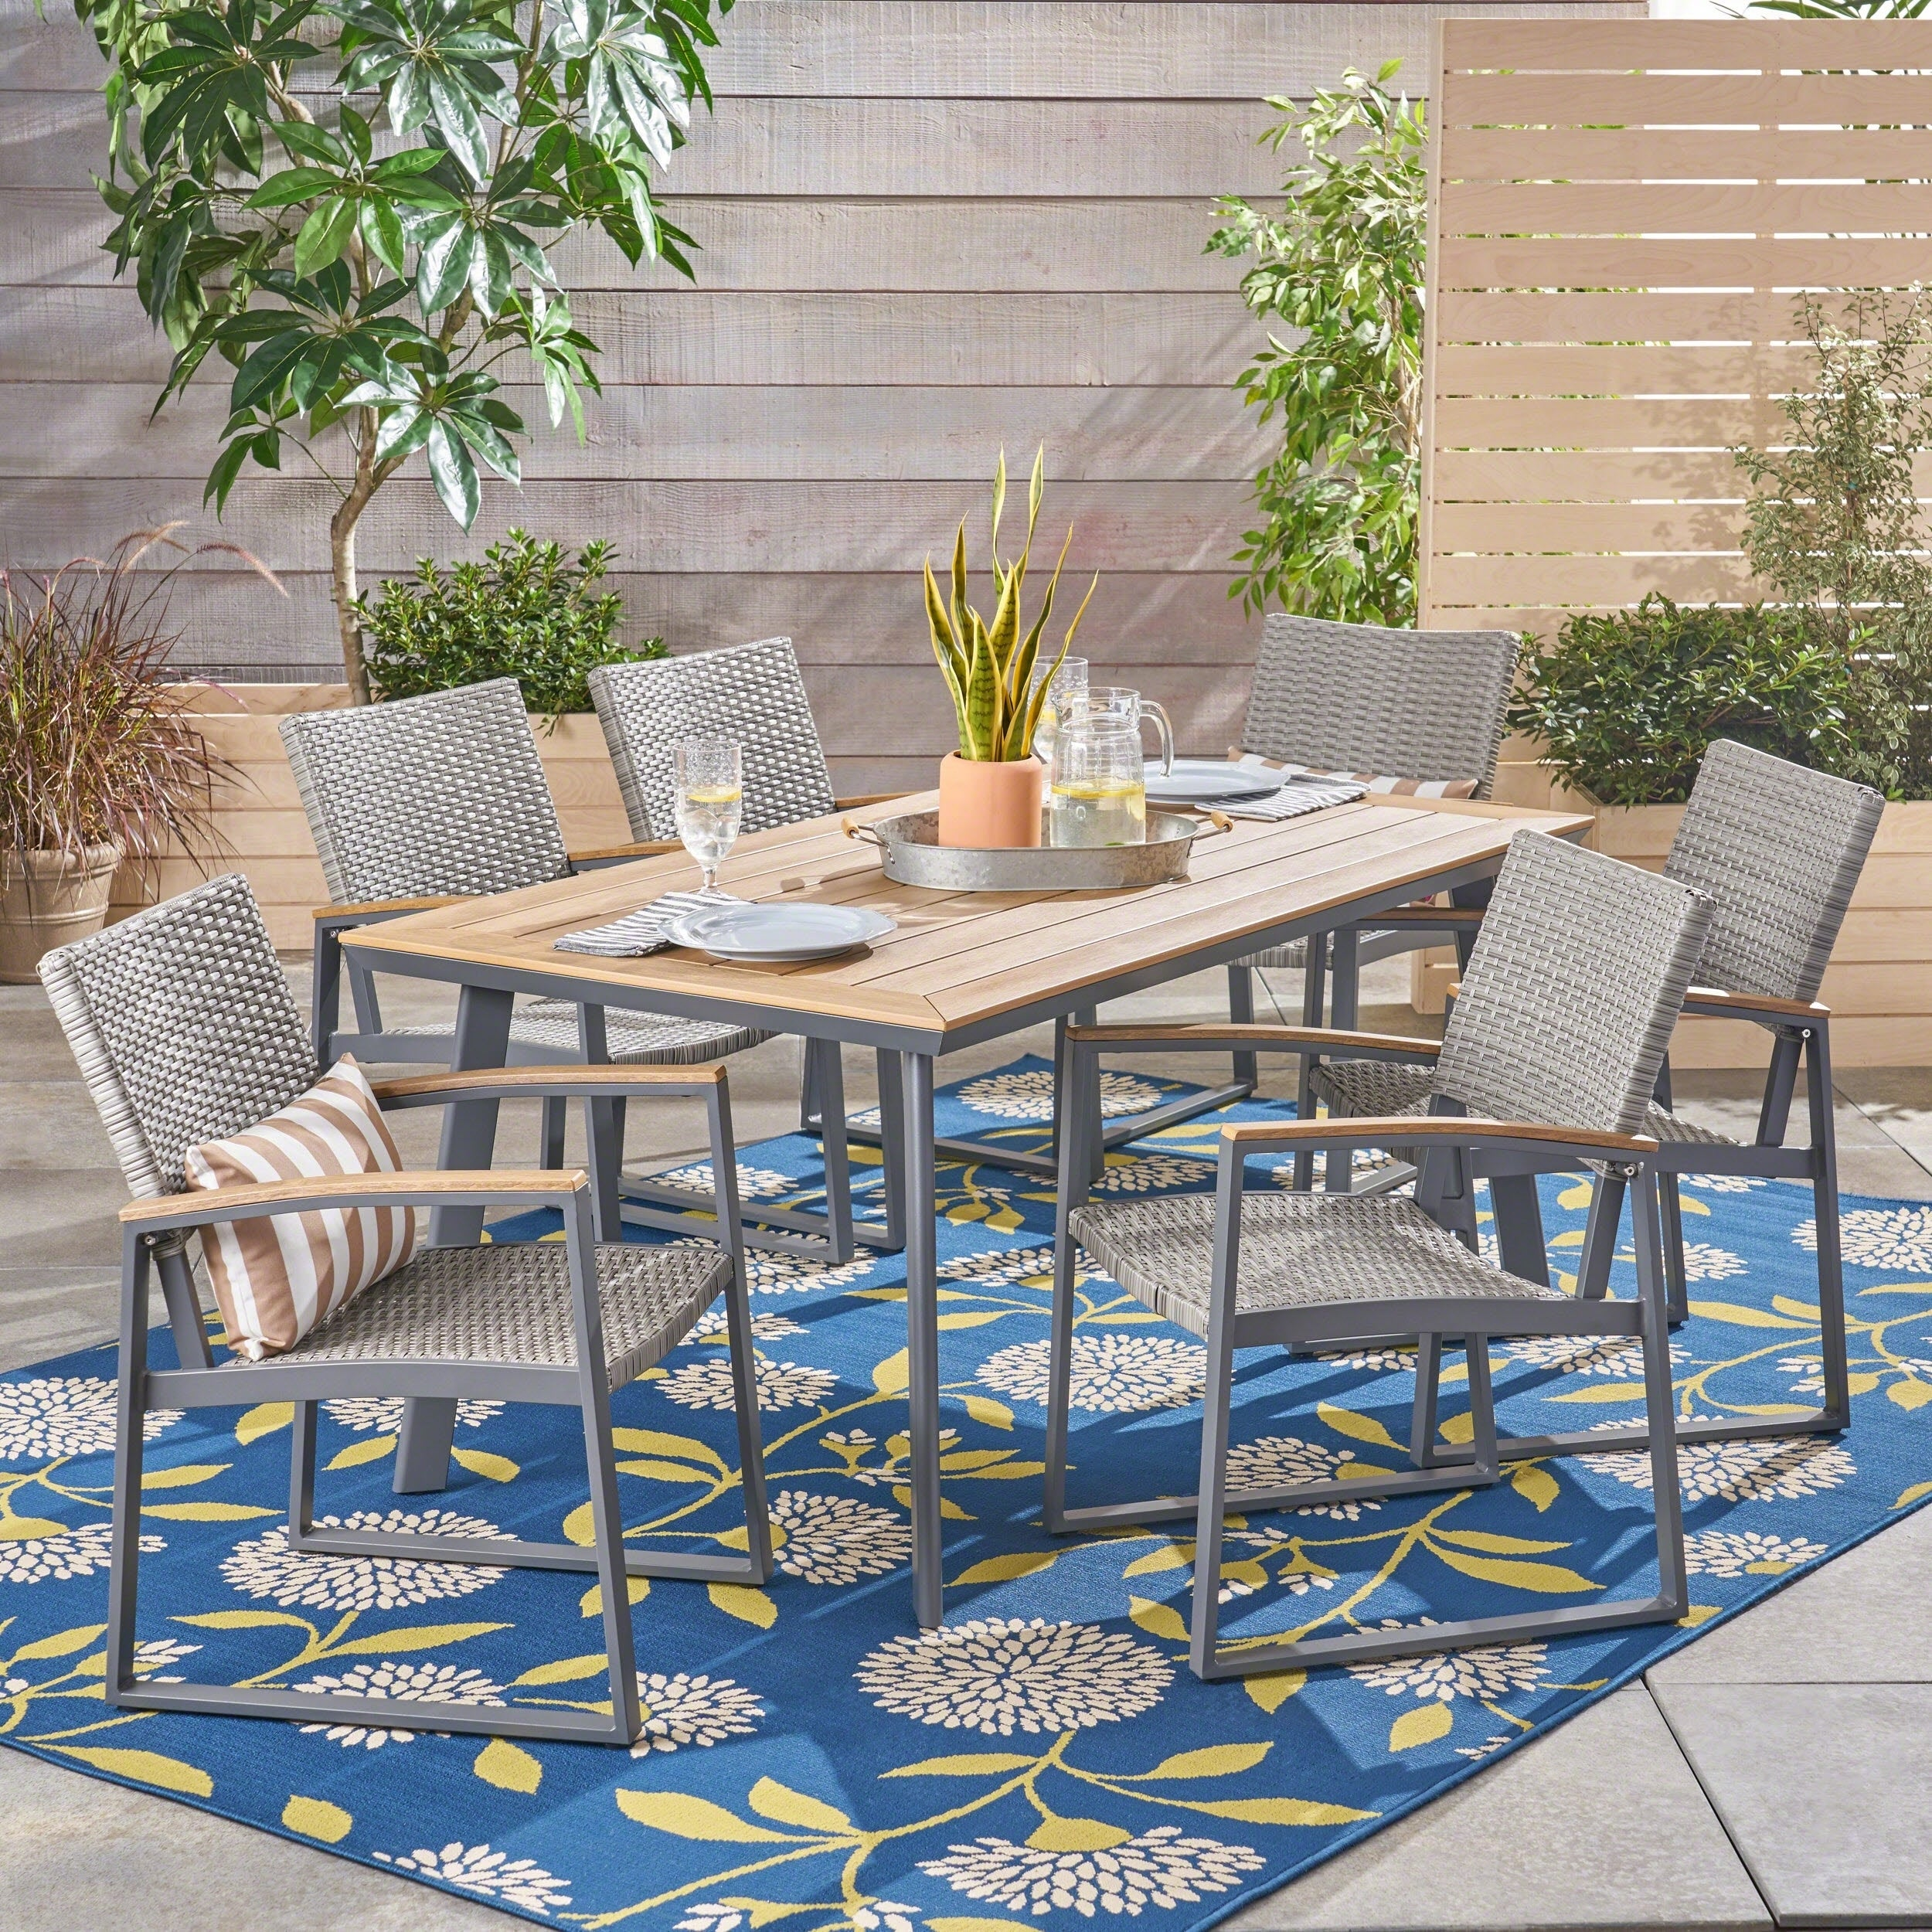 Outdoor 7 Piece Dining Set With Wood